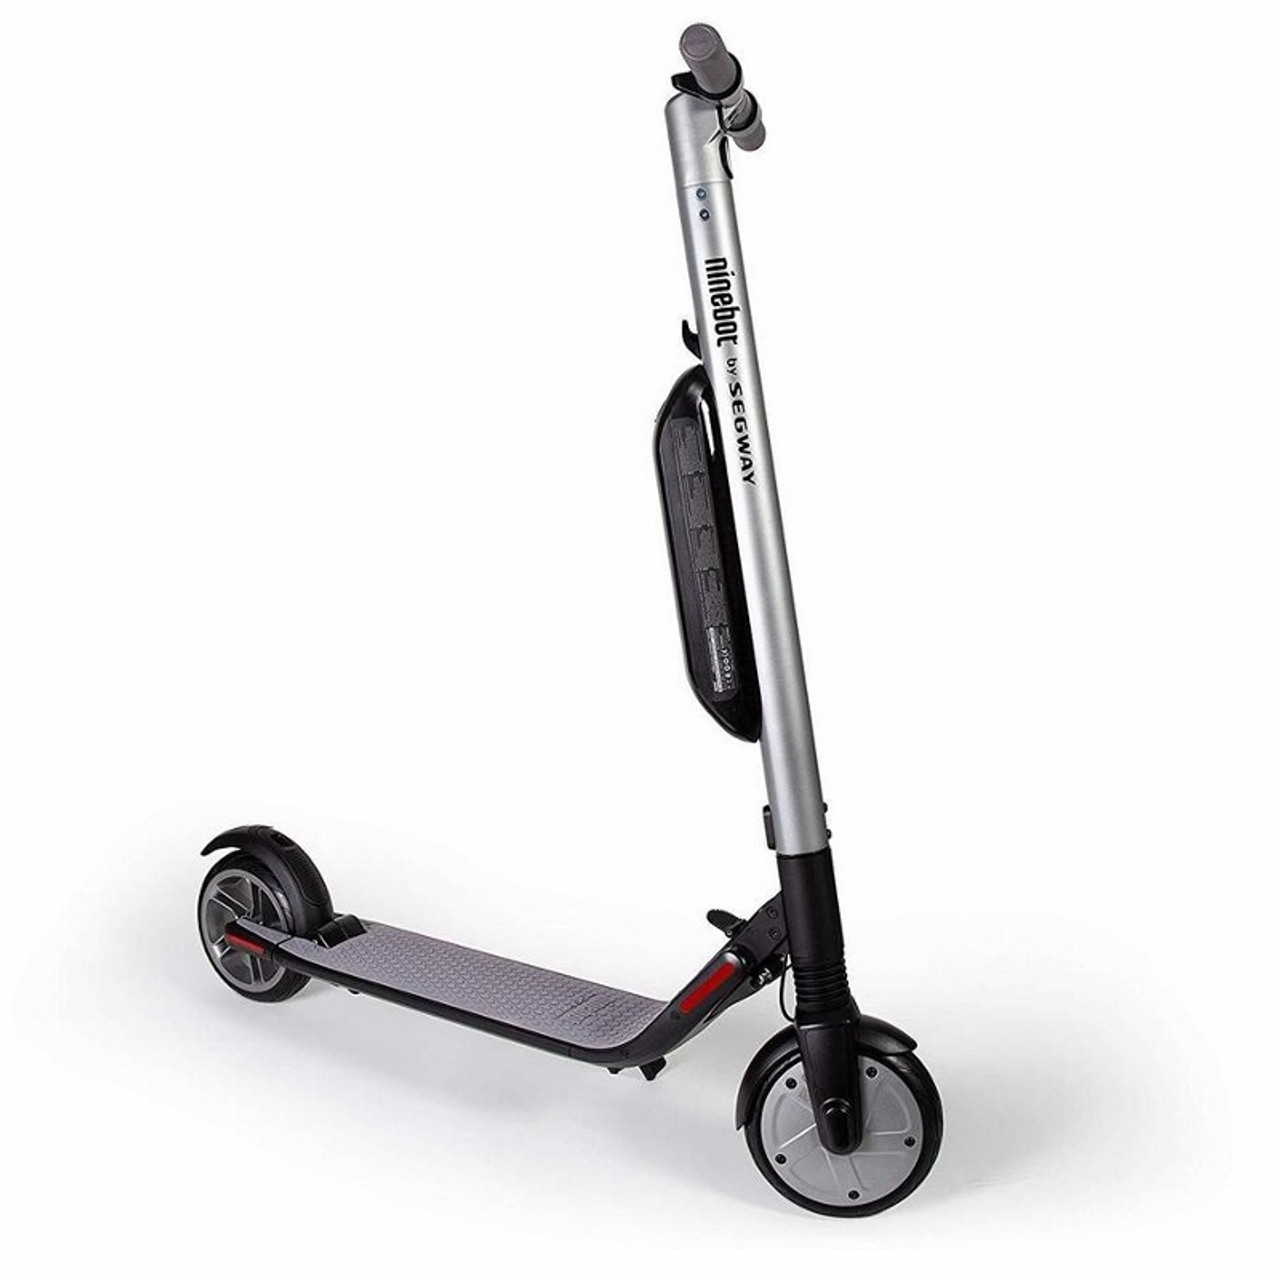 Ninebot Es4 Segway Es4 Foldable Electric Kick Scooter Official Dealer In Canada